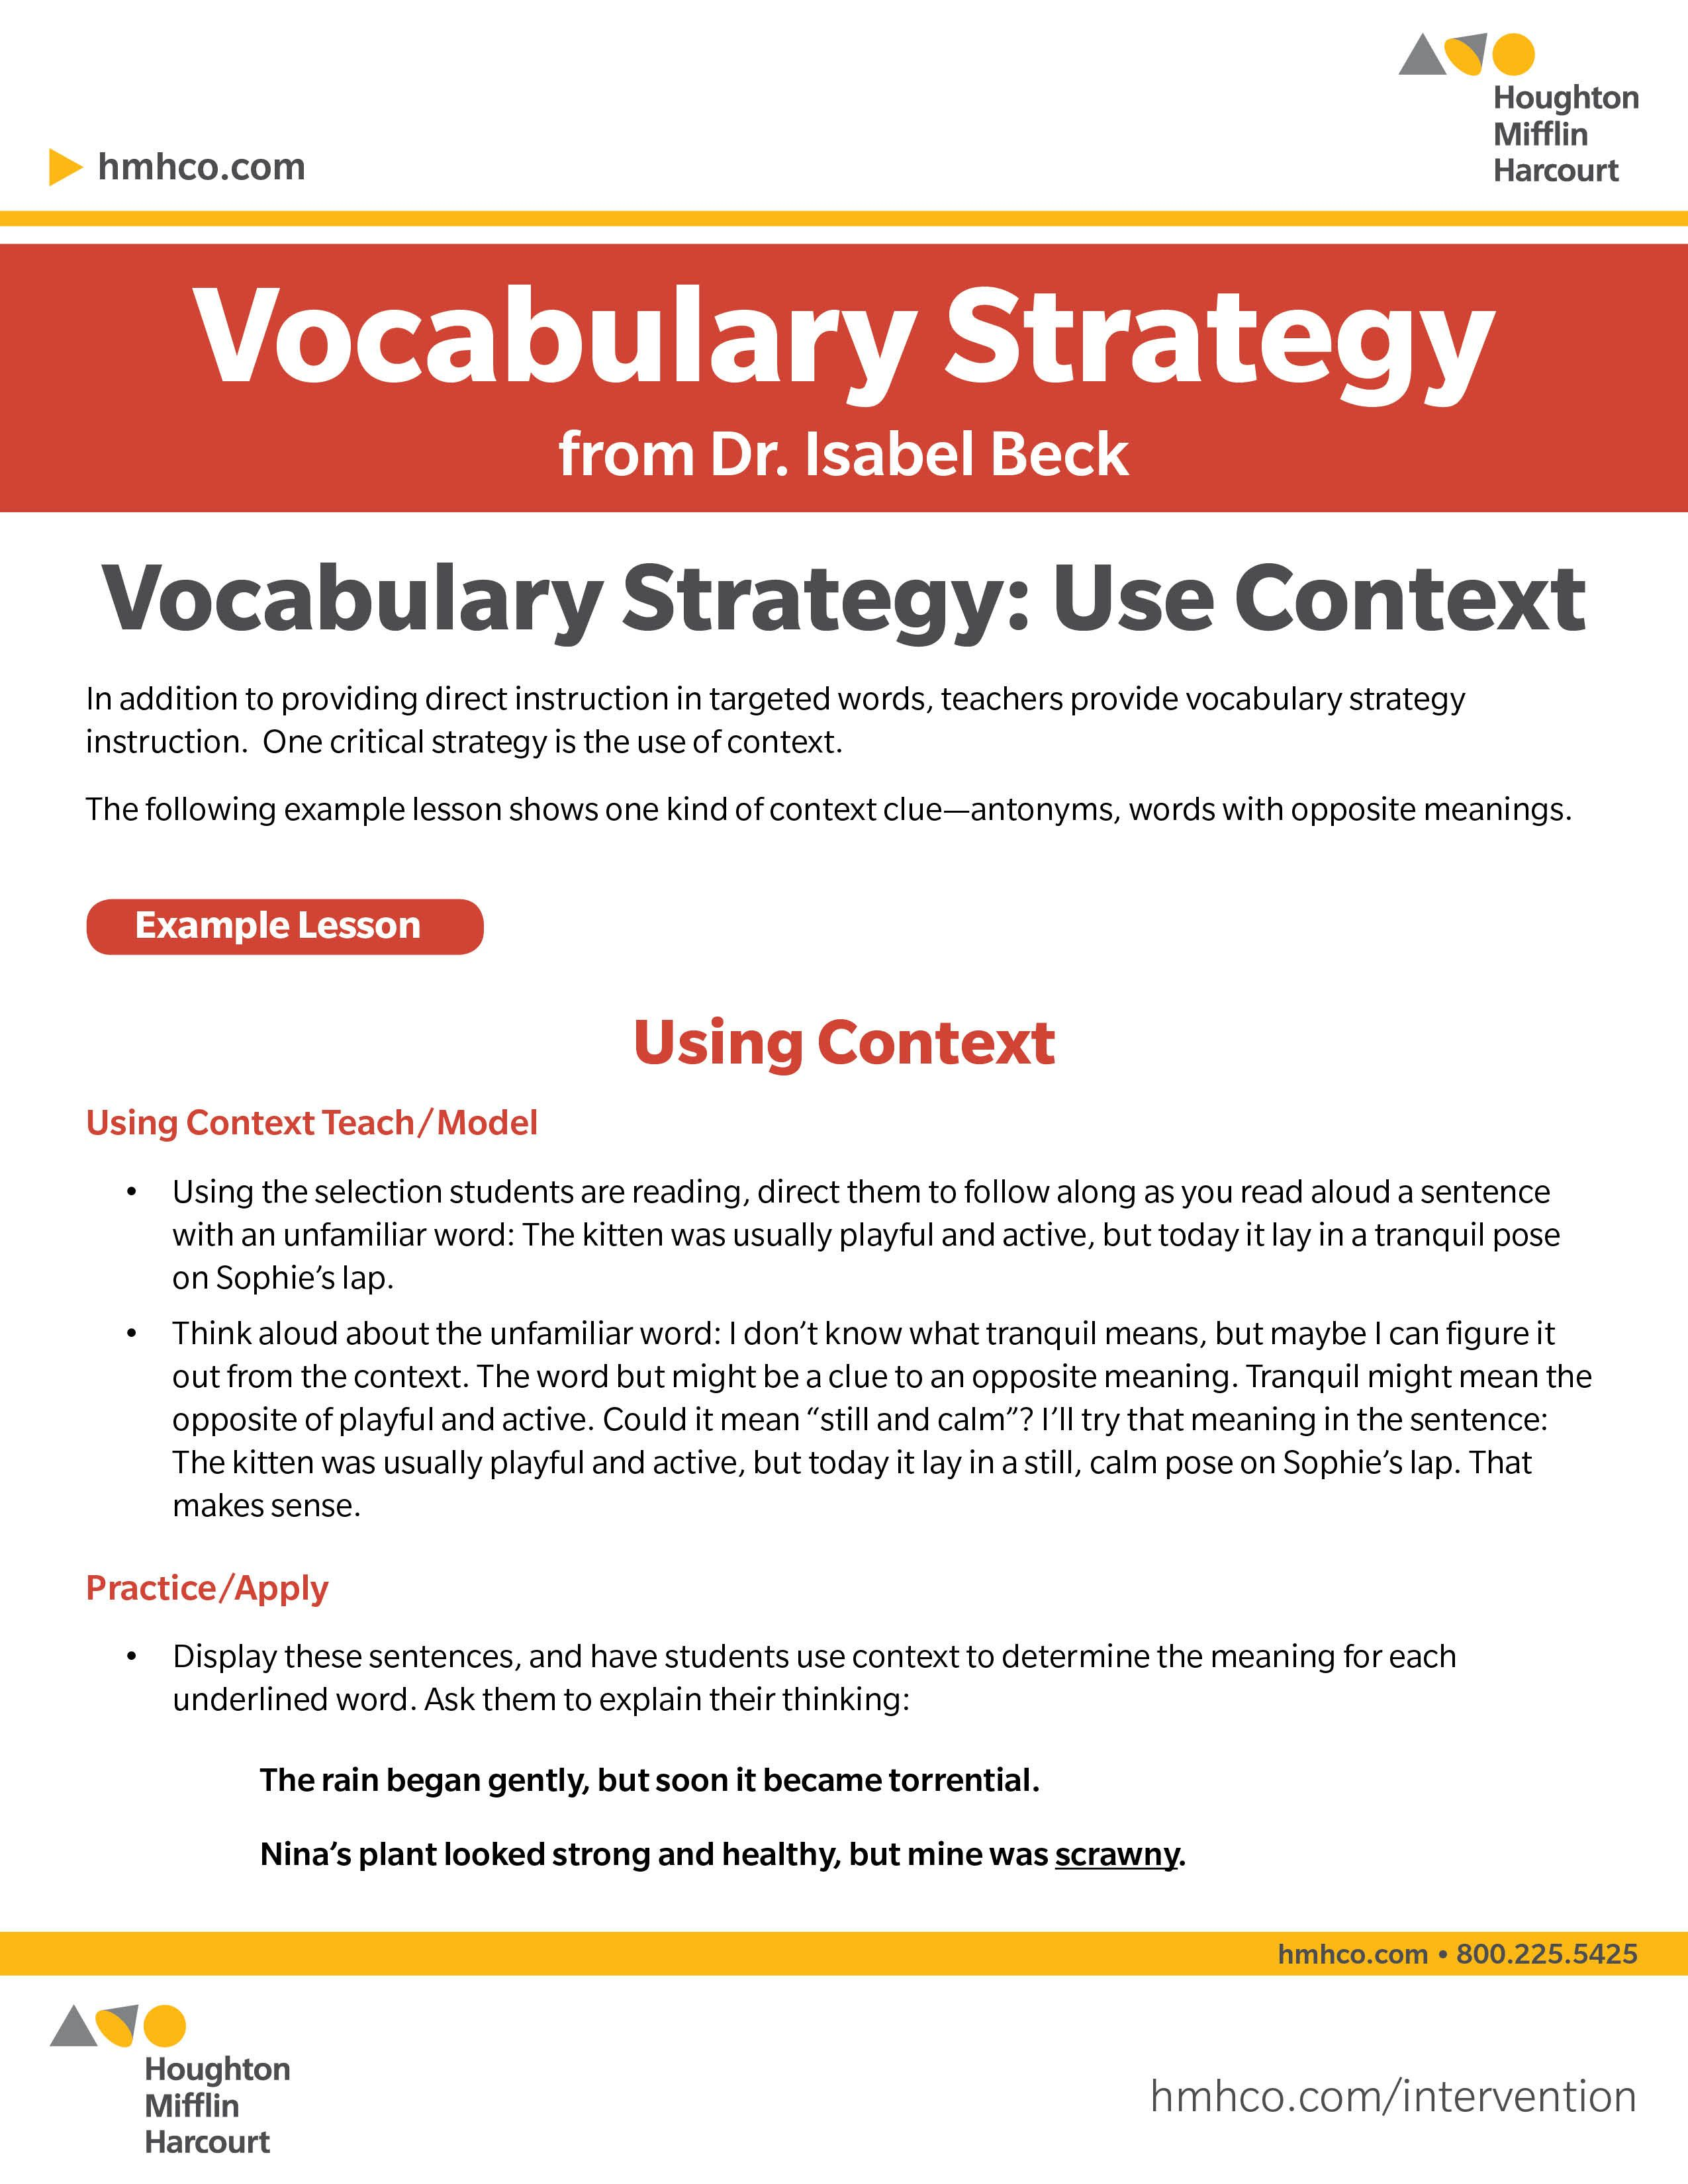 Vocabulary Strategy Use Context Download This Vocabulary Strategy From Dr Isabel Beck Visit